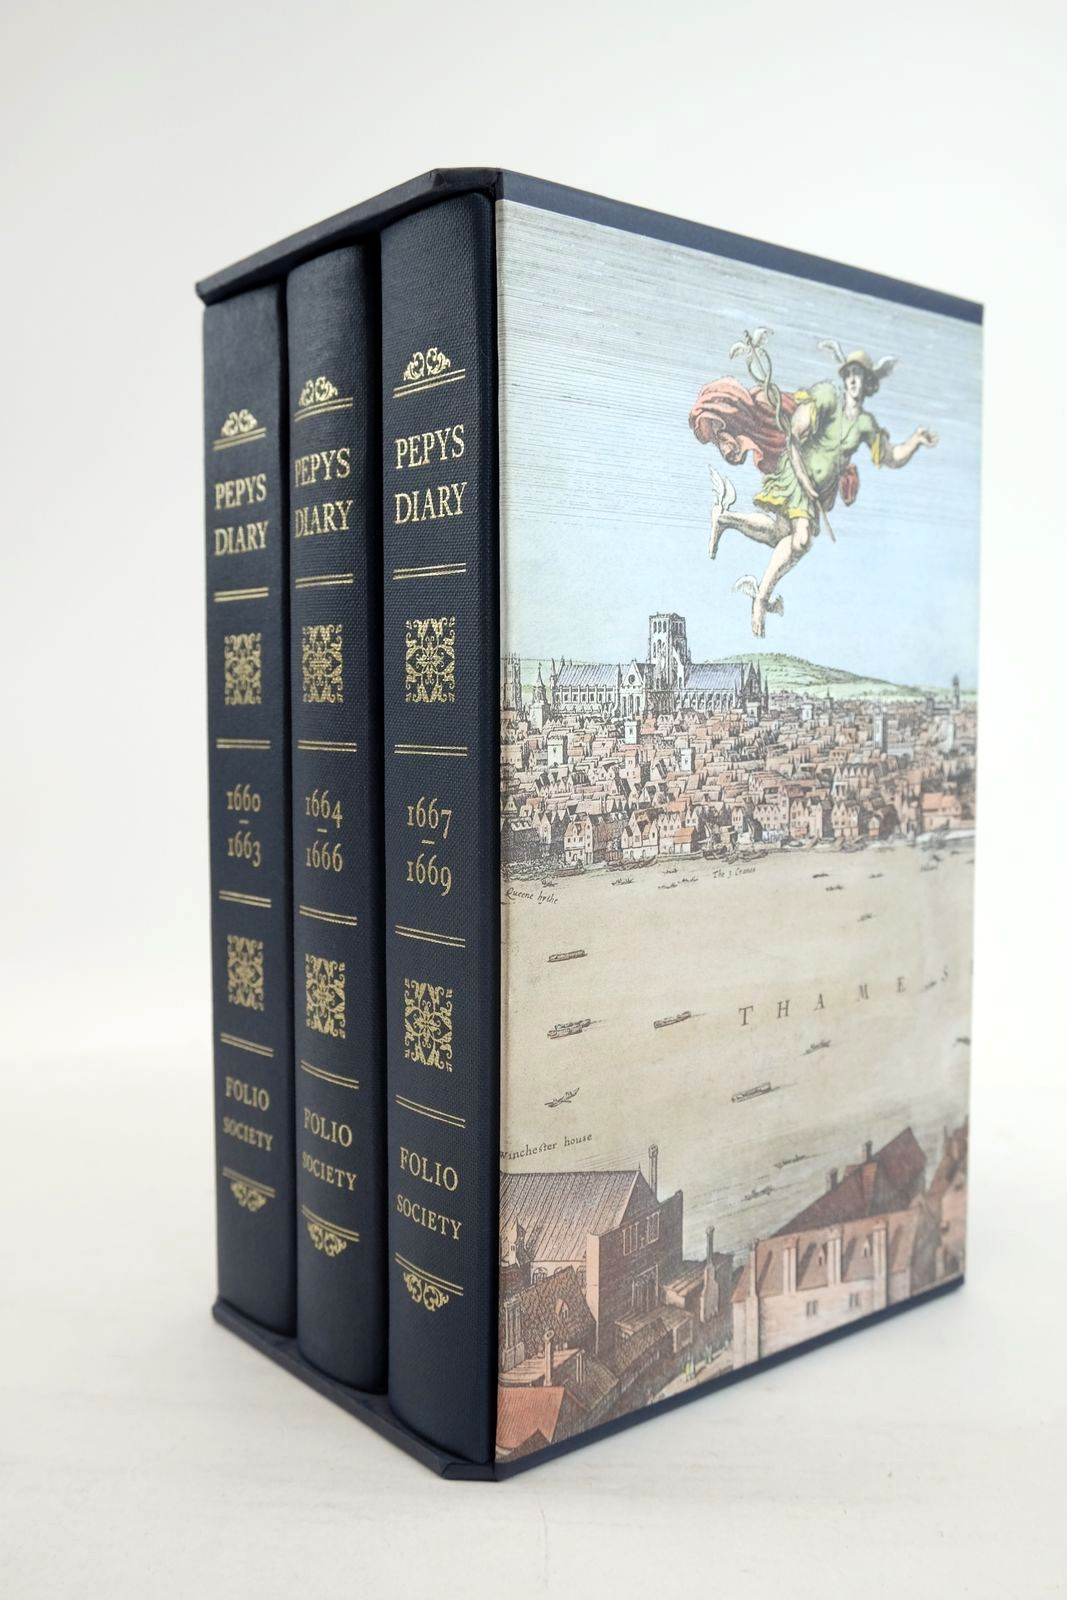 Photo of PEPYS'S DIARY (3 VOLUMES) written by Pepys, Samuel Latham, Robert published by Folio Society (STOCK CODE: 1320107)  for sale by Stella & Rose's Books